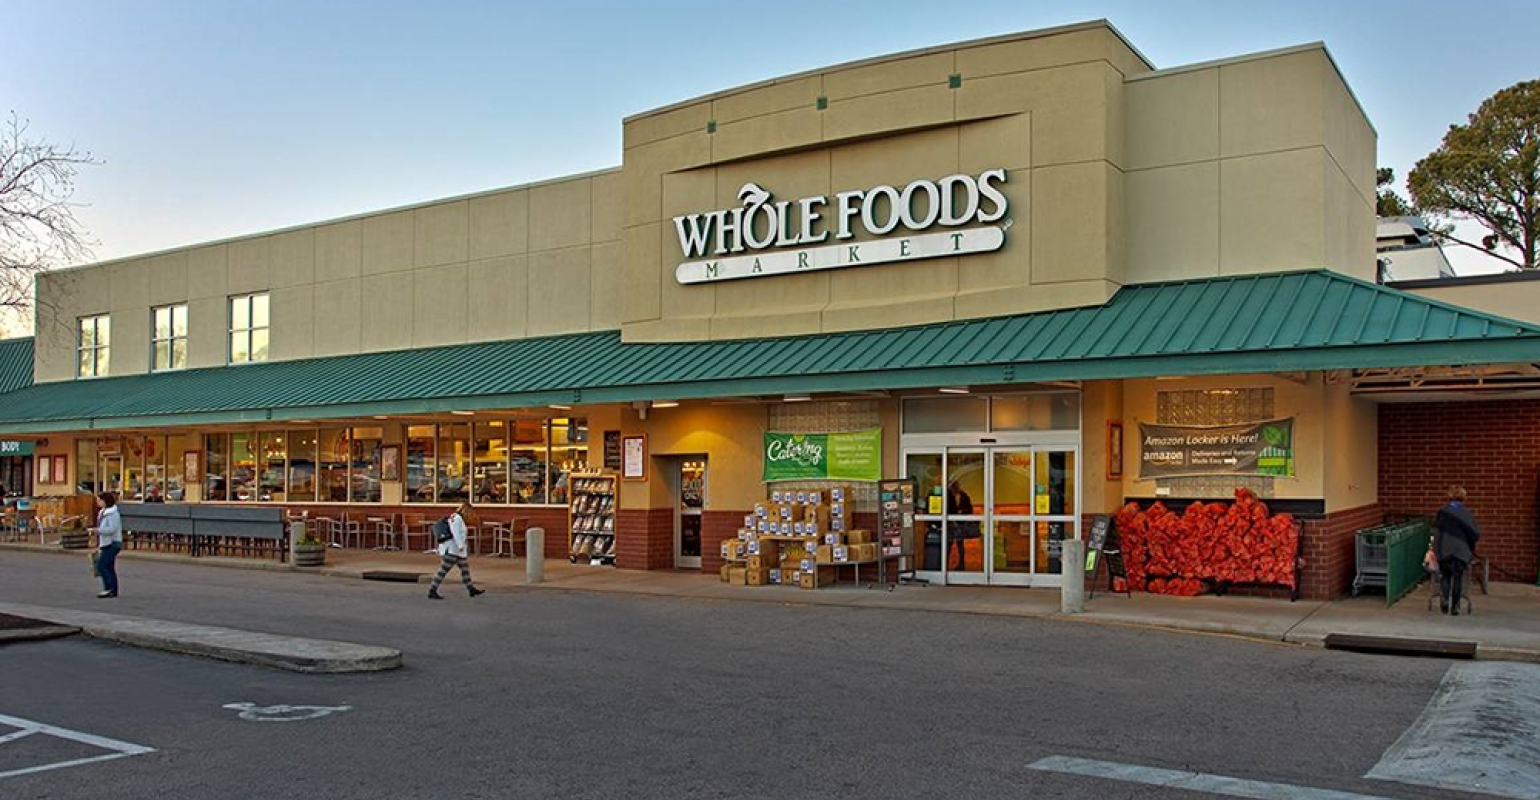 Whole Foods store_Ridgewood Shopping Center-Raleigh-NC